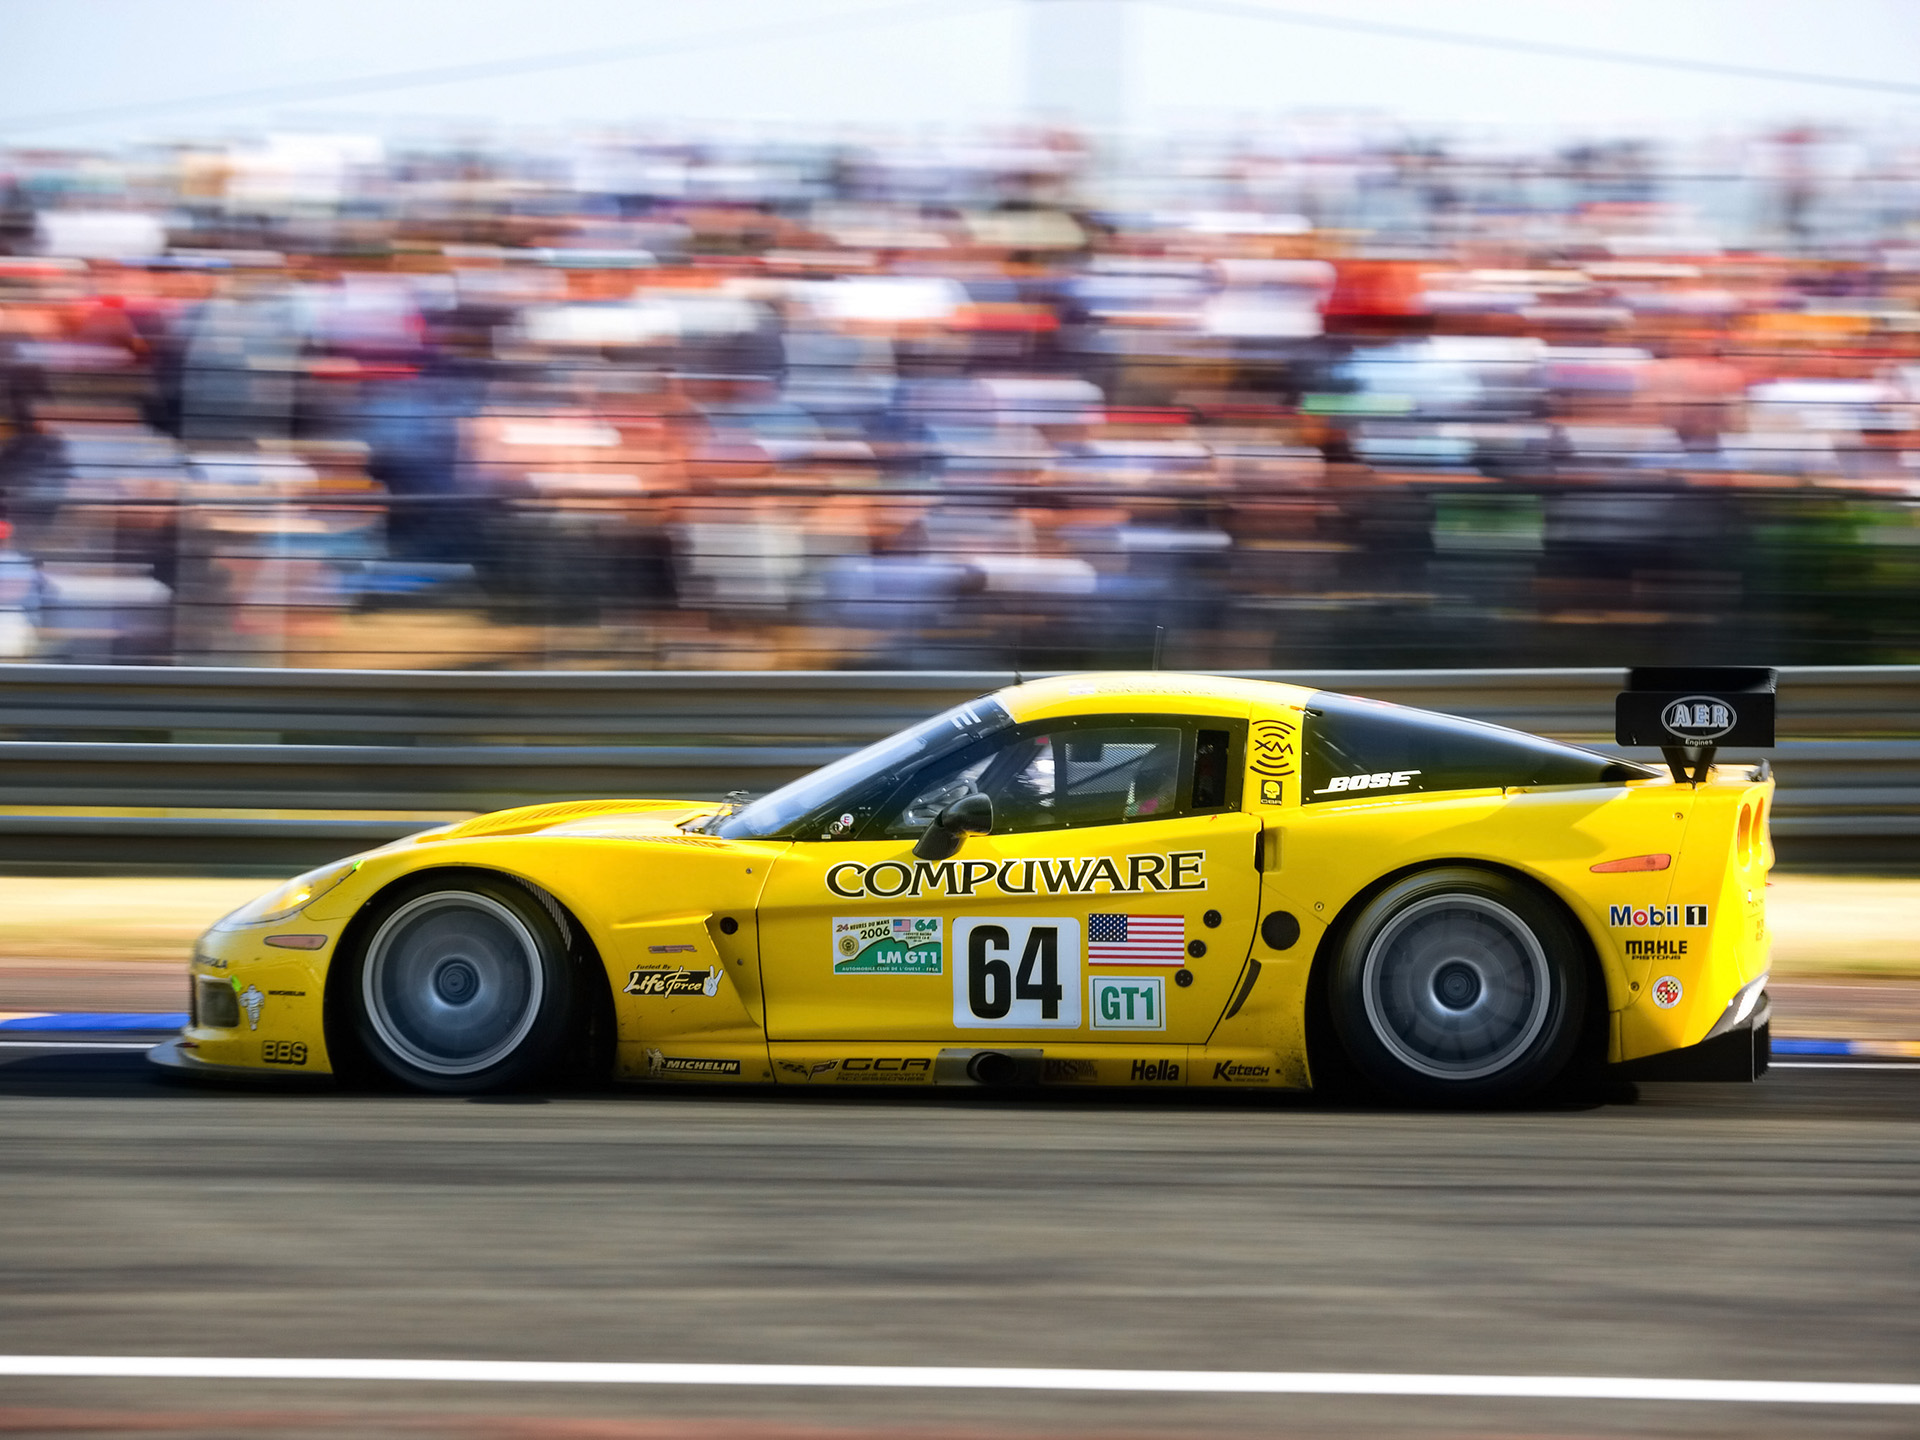 2006-Chevrolet-Corvette-at-Le-Mans-24-Hours.jpg